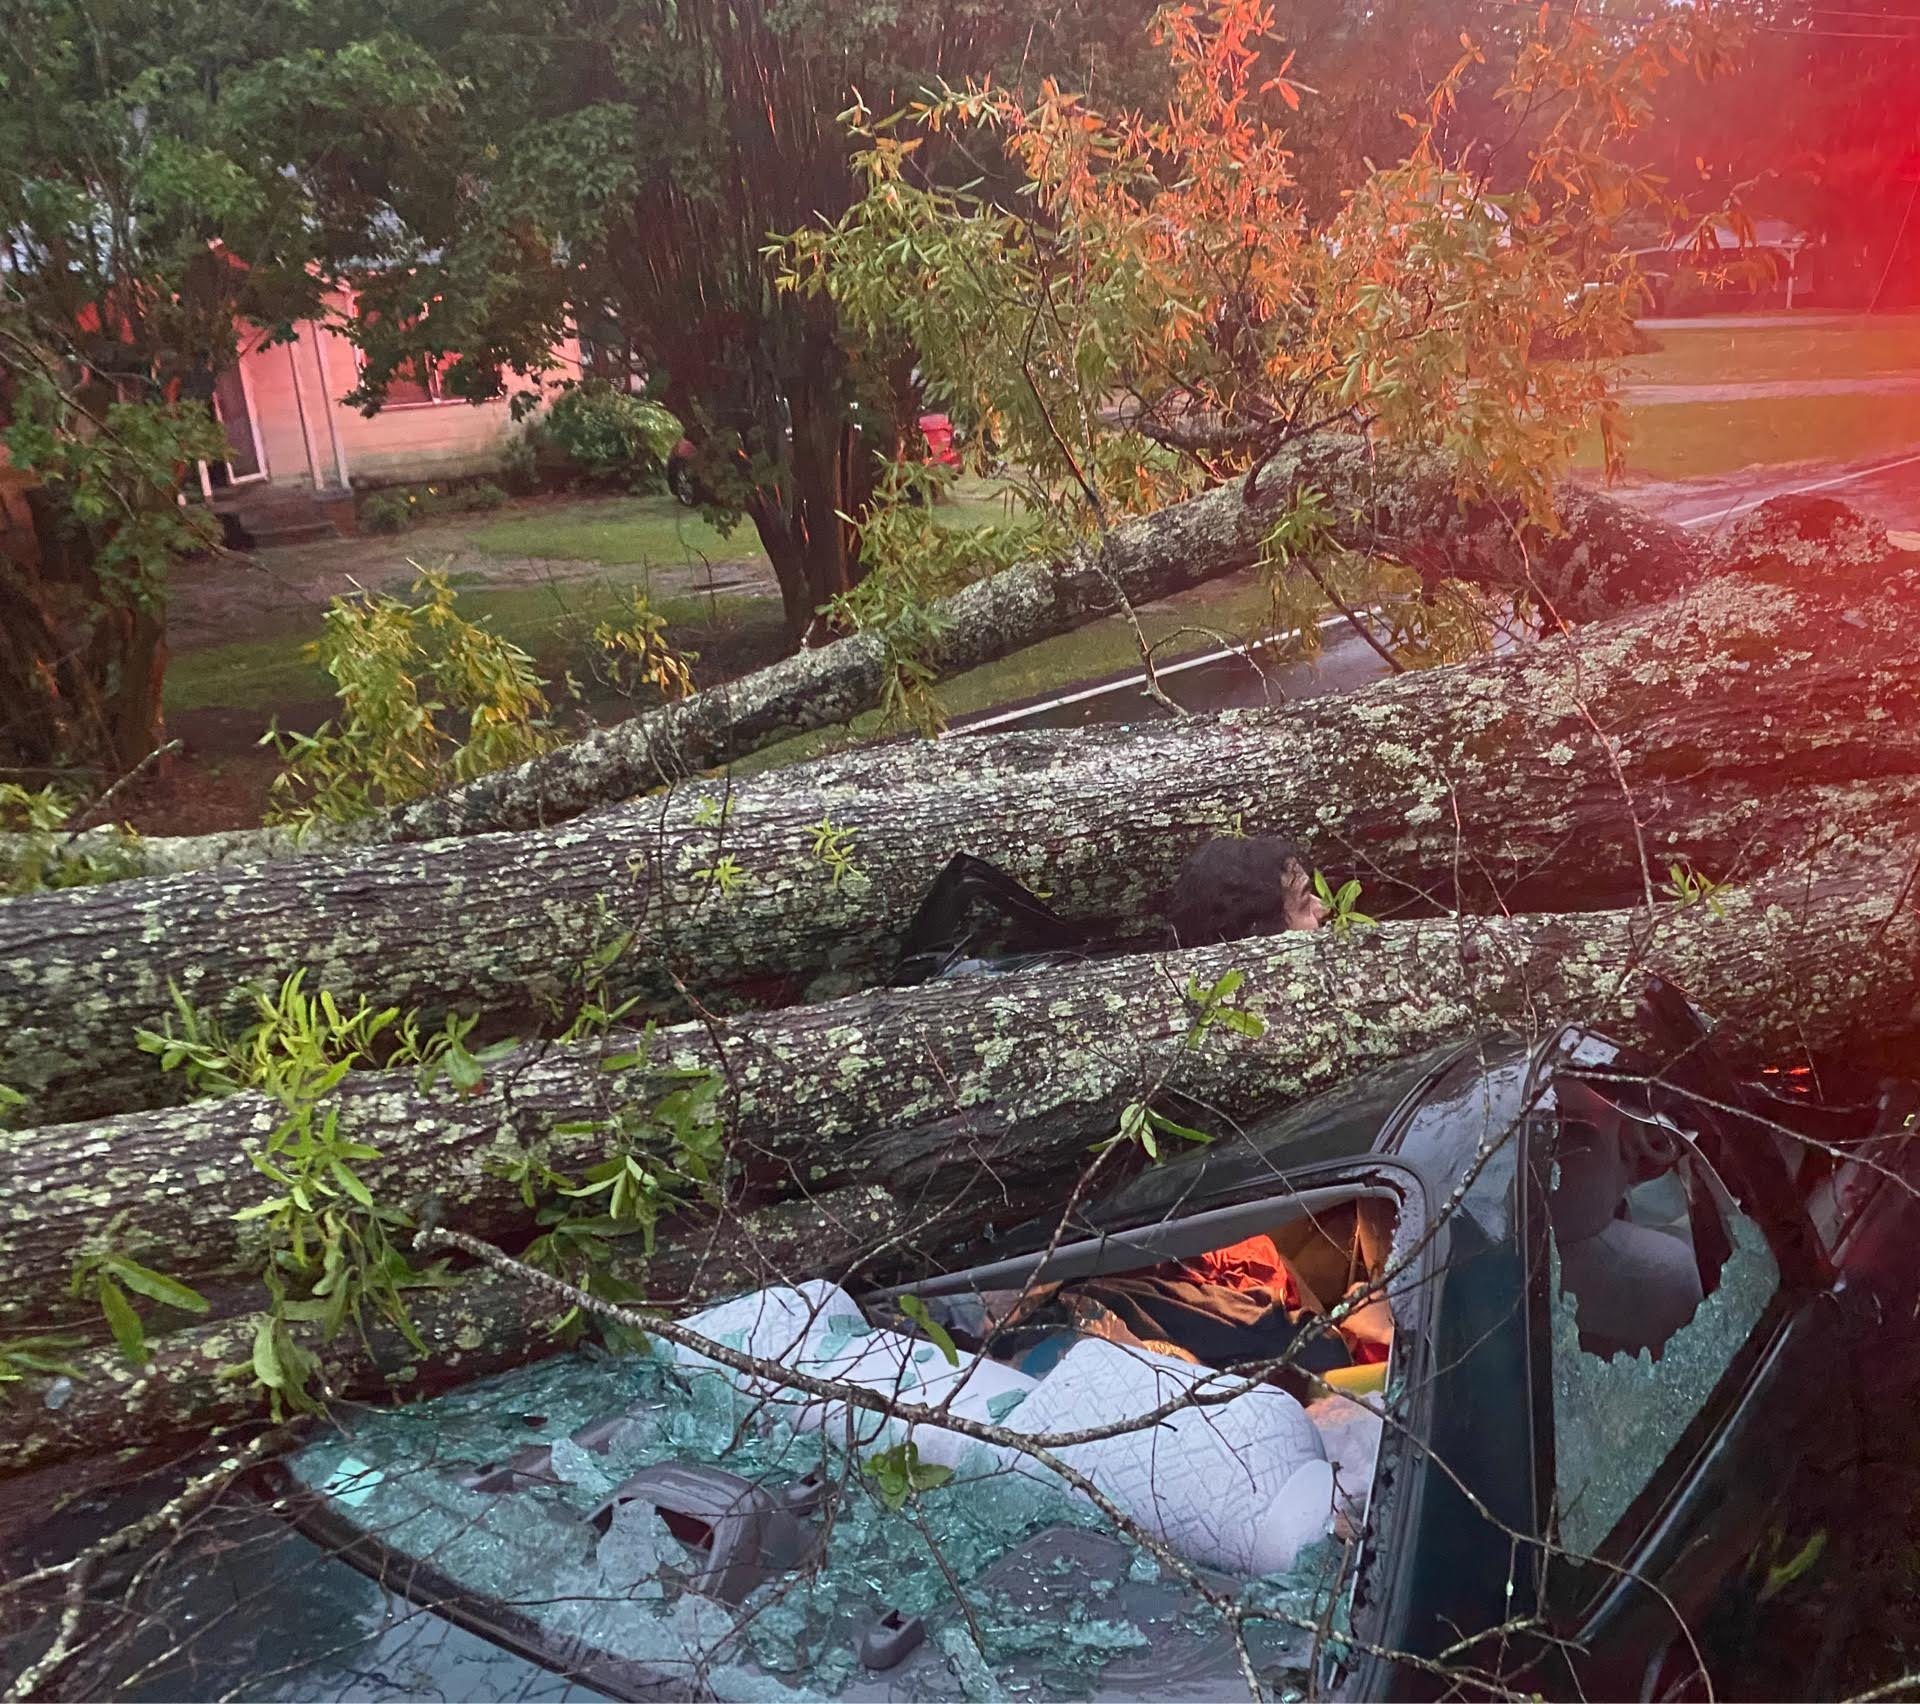 Henri Cheramie was in his car when a powerful storm blew through the River Region taking a large tree down around him.